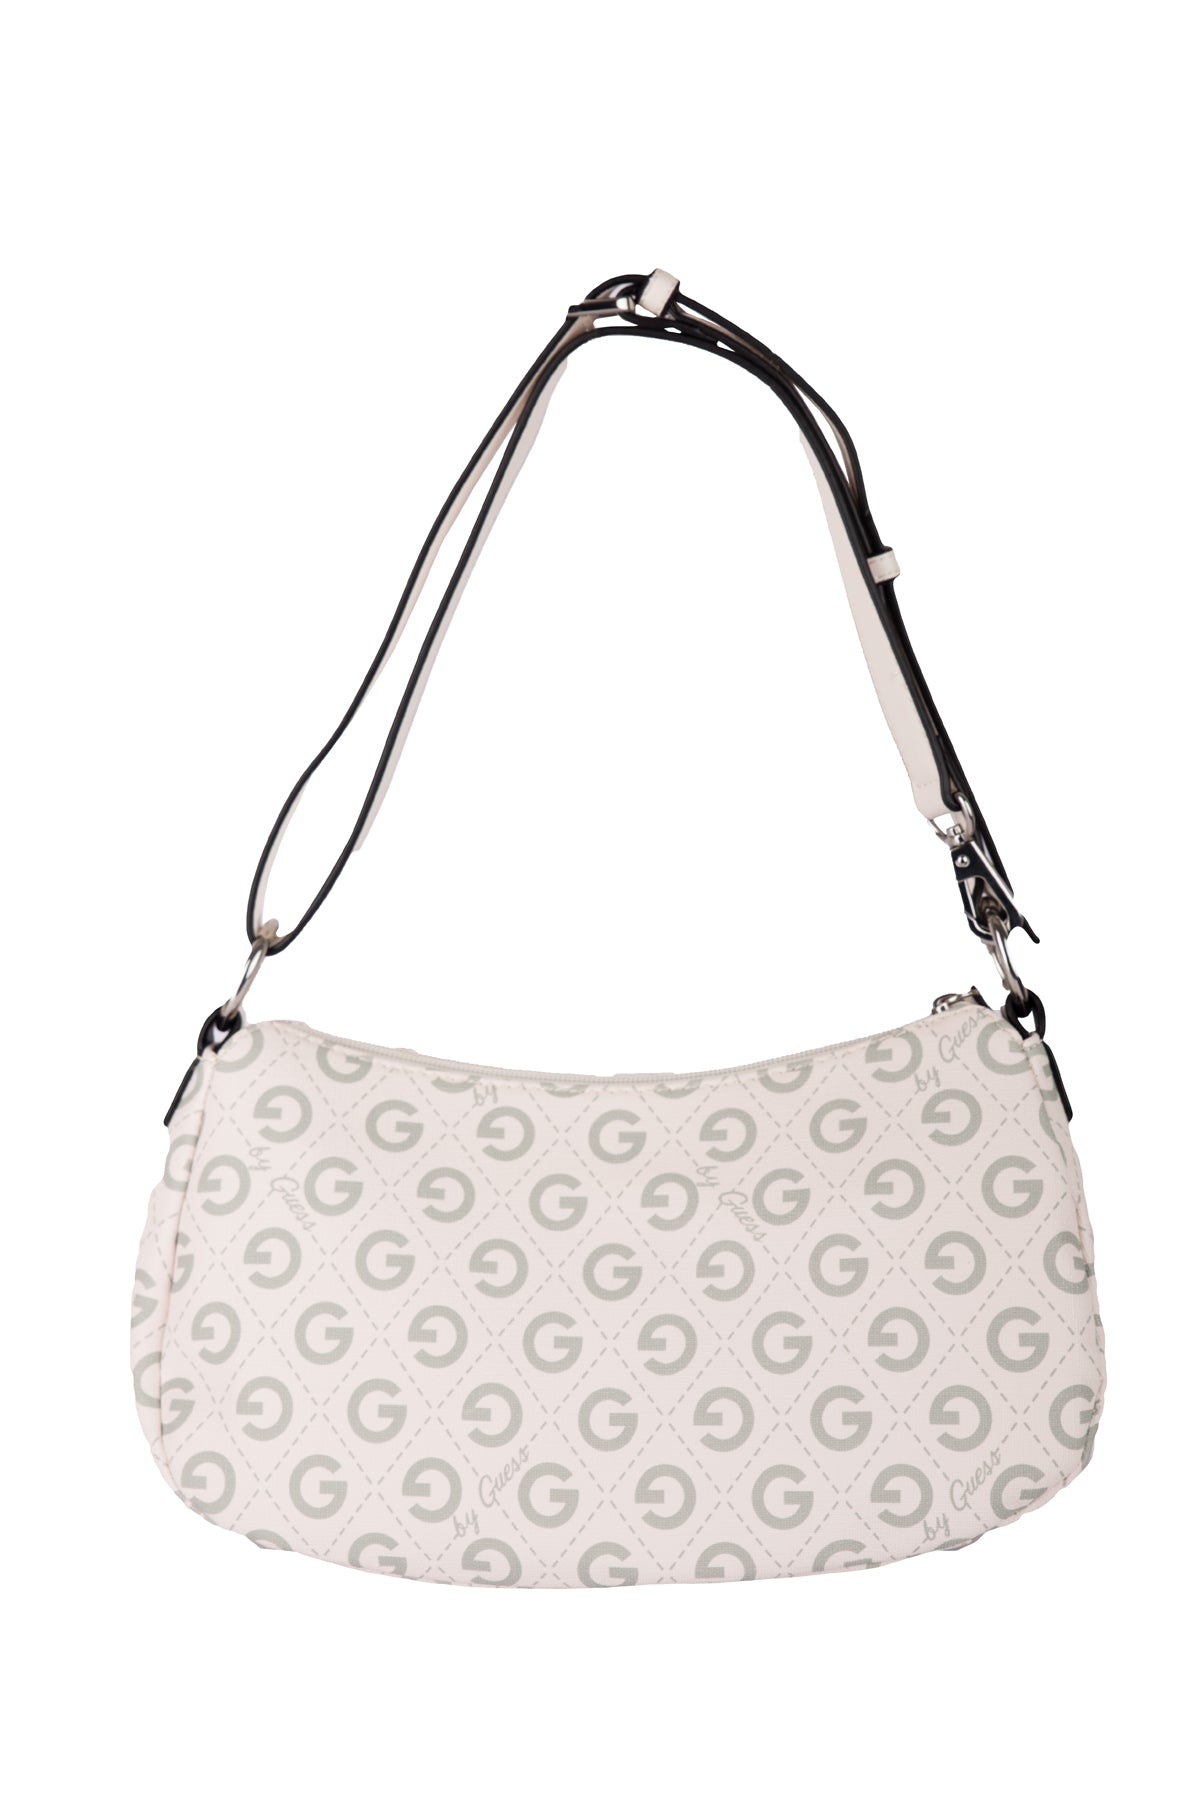 Guess Signature Shoulder Bag